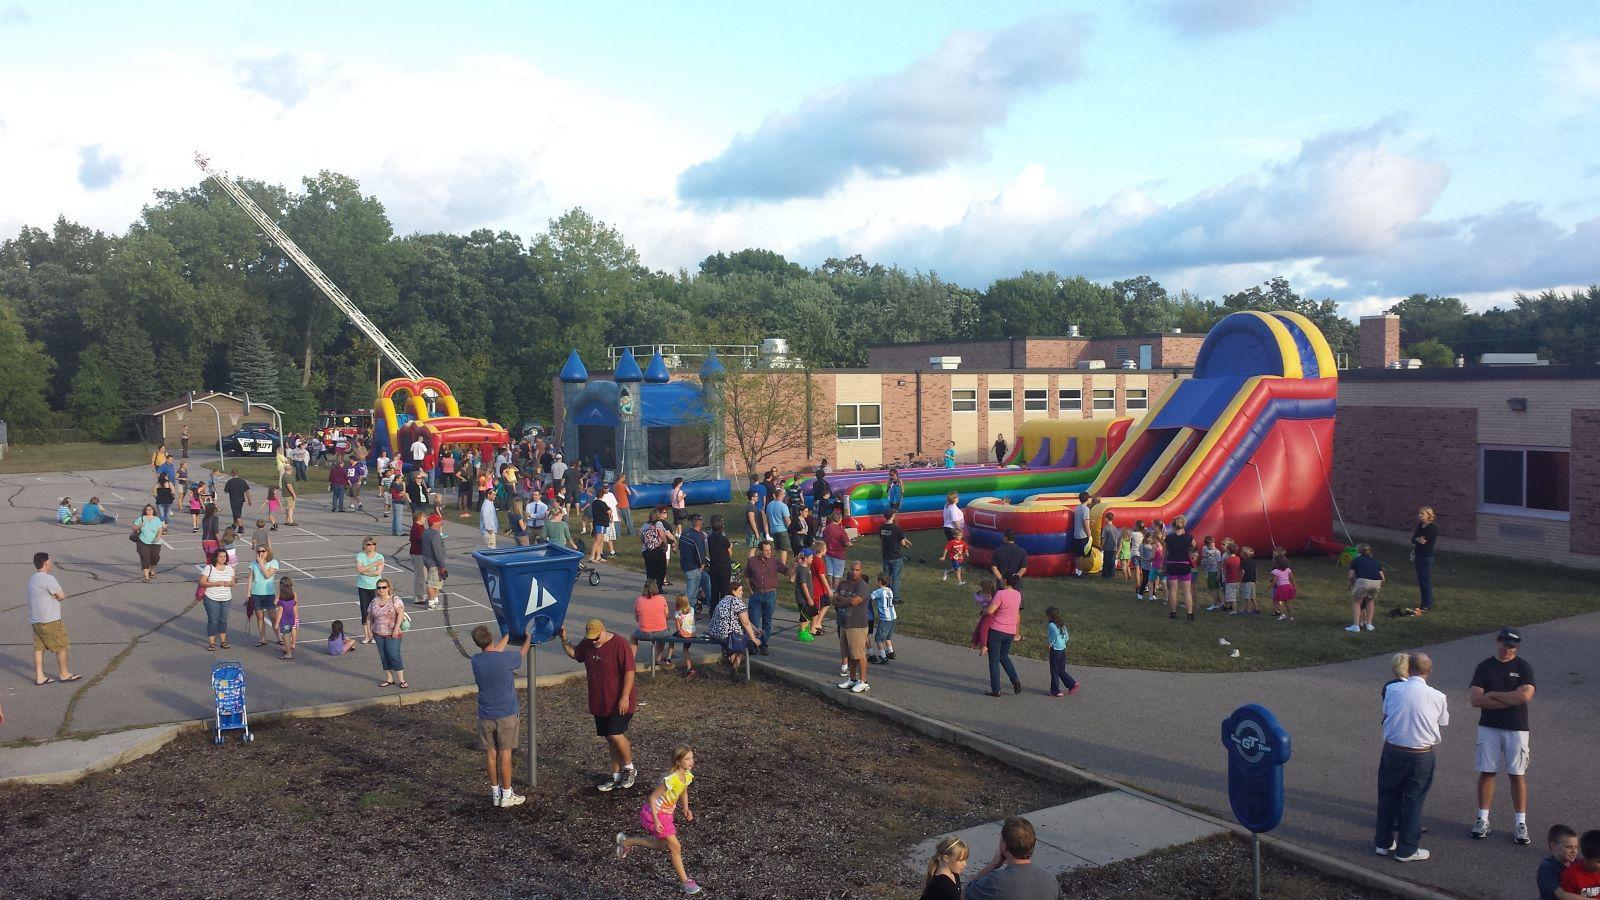 School carnival with giant slide, bounce house, obstacle course, and other inflatables